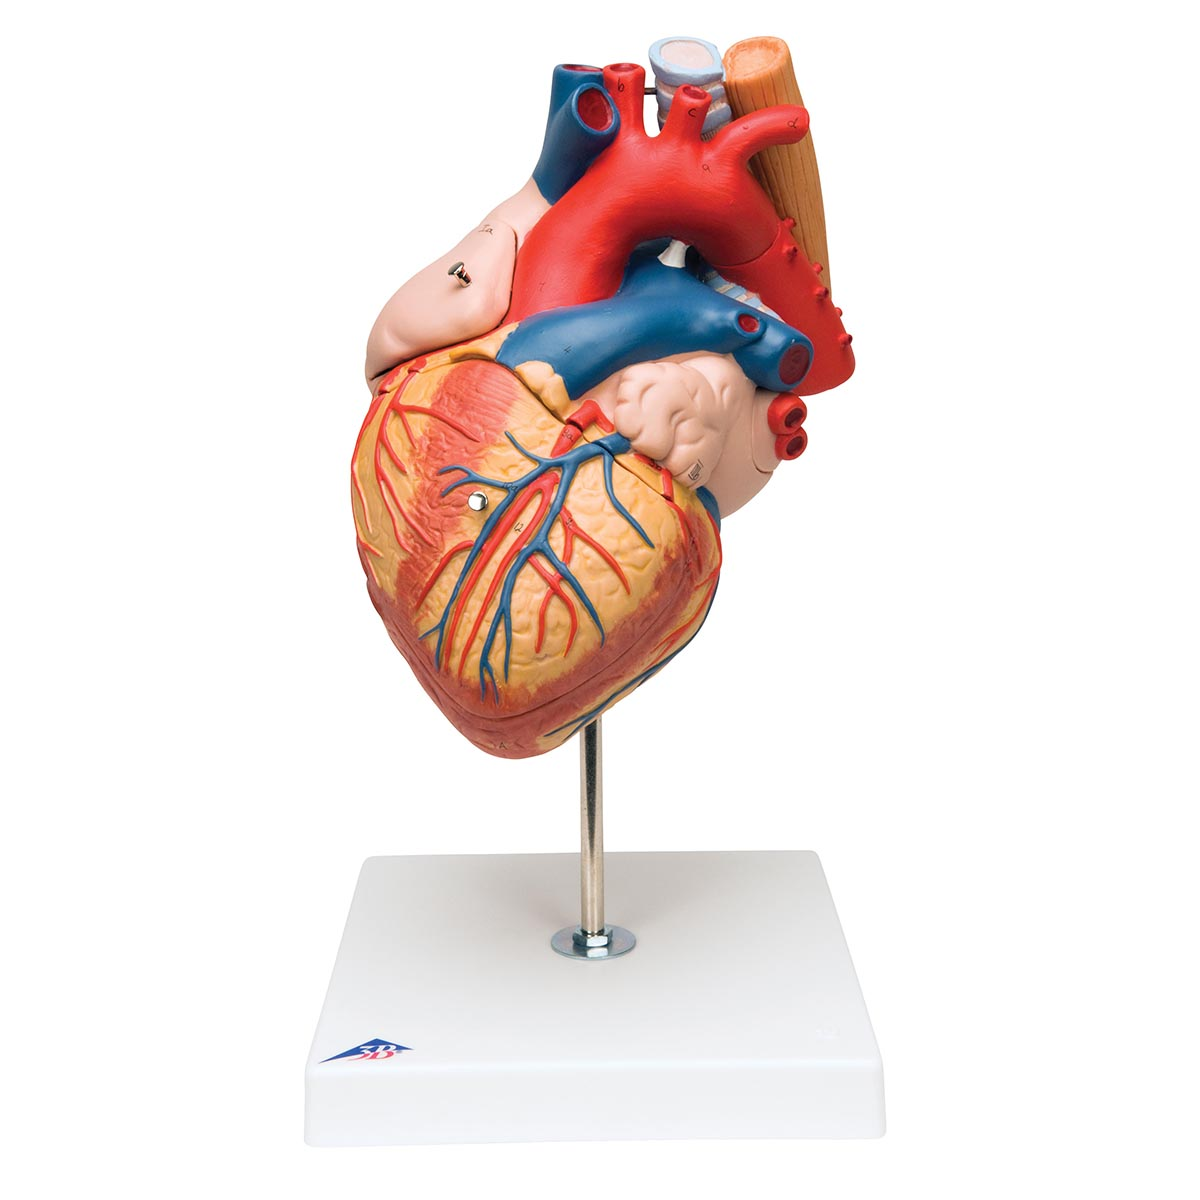 Heart with Esophagus and Trachea, 2 times life size, 5 part G13 ...